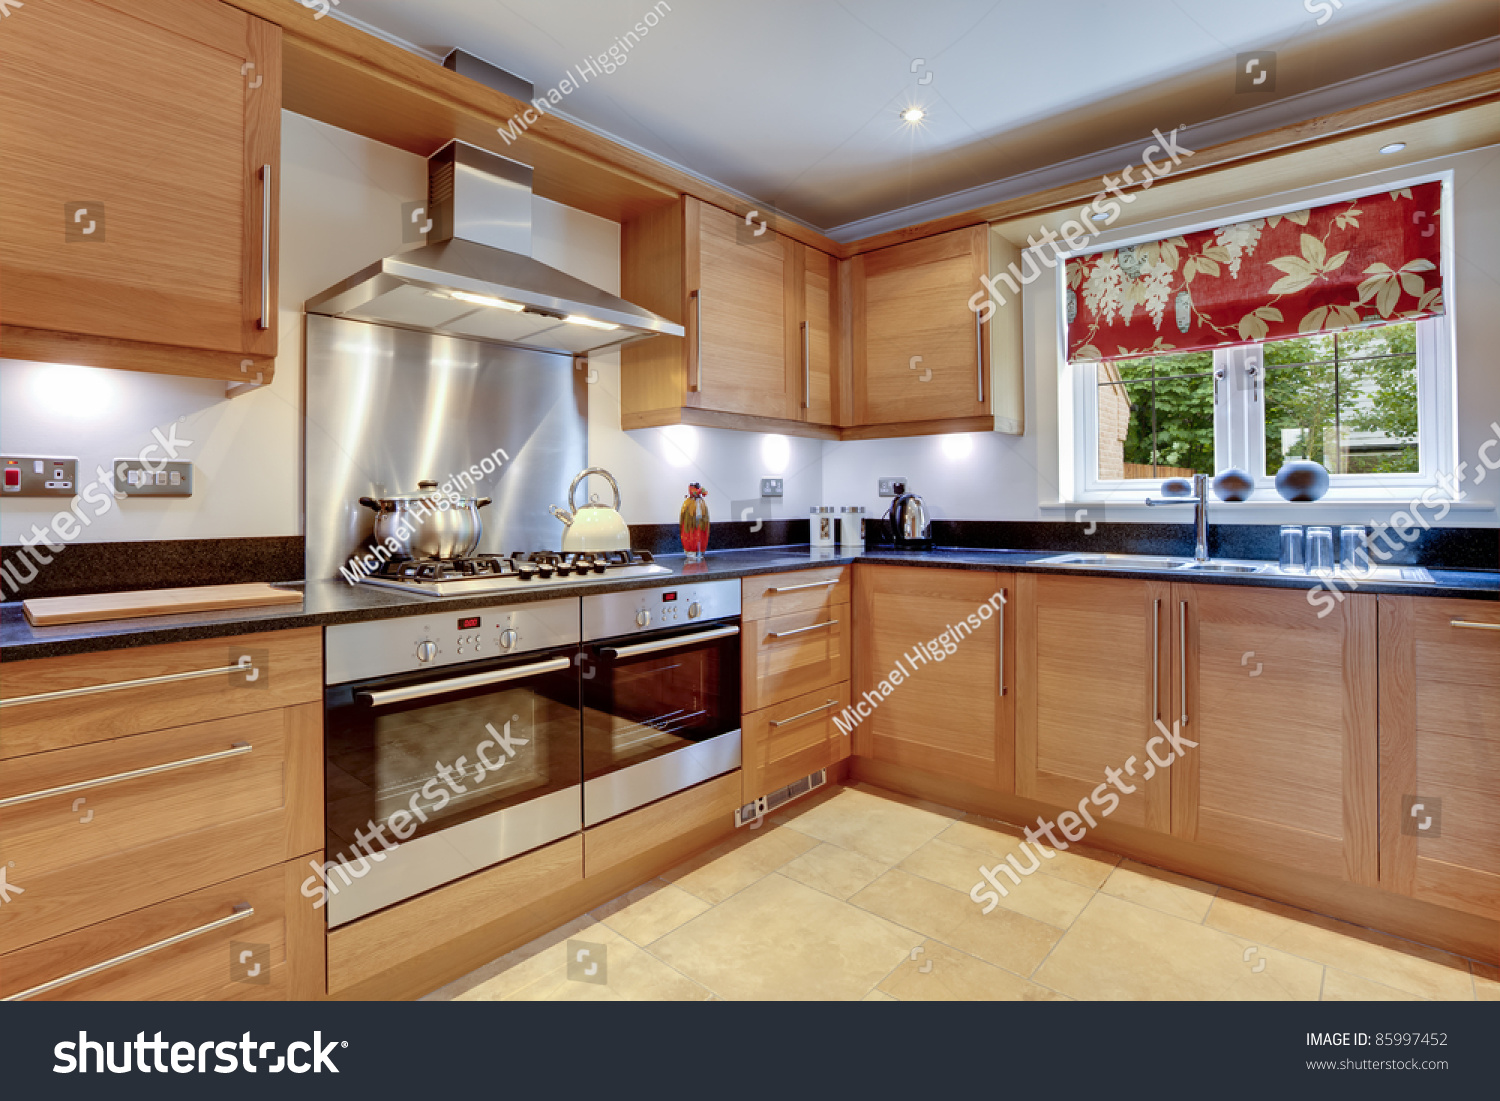 Stainless steel kitchen work surfaces - Luxury Modern Fitted Kitchen With Stainless Steel Appliances Granite Work Surfaces And Two Ovens